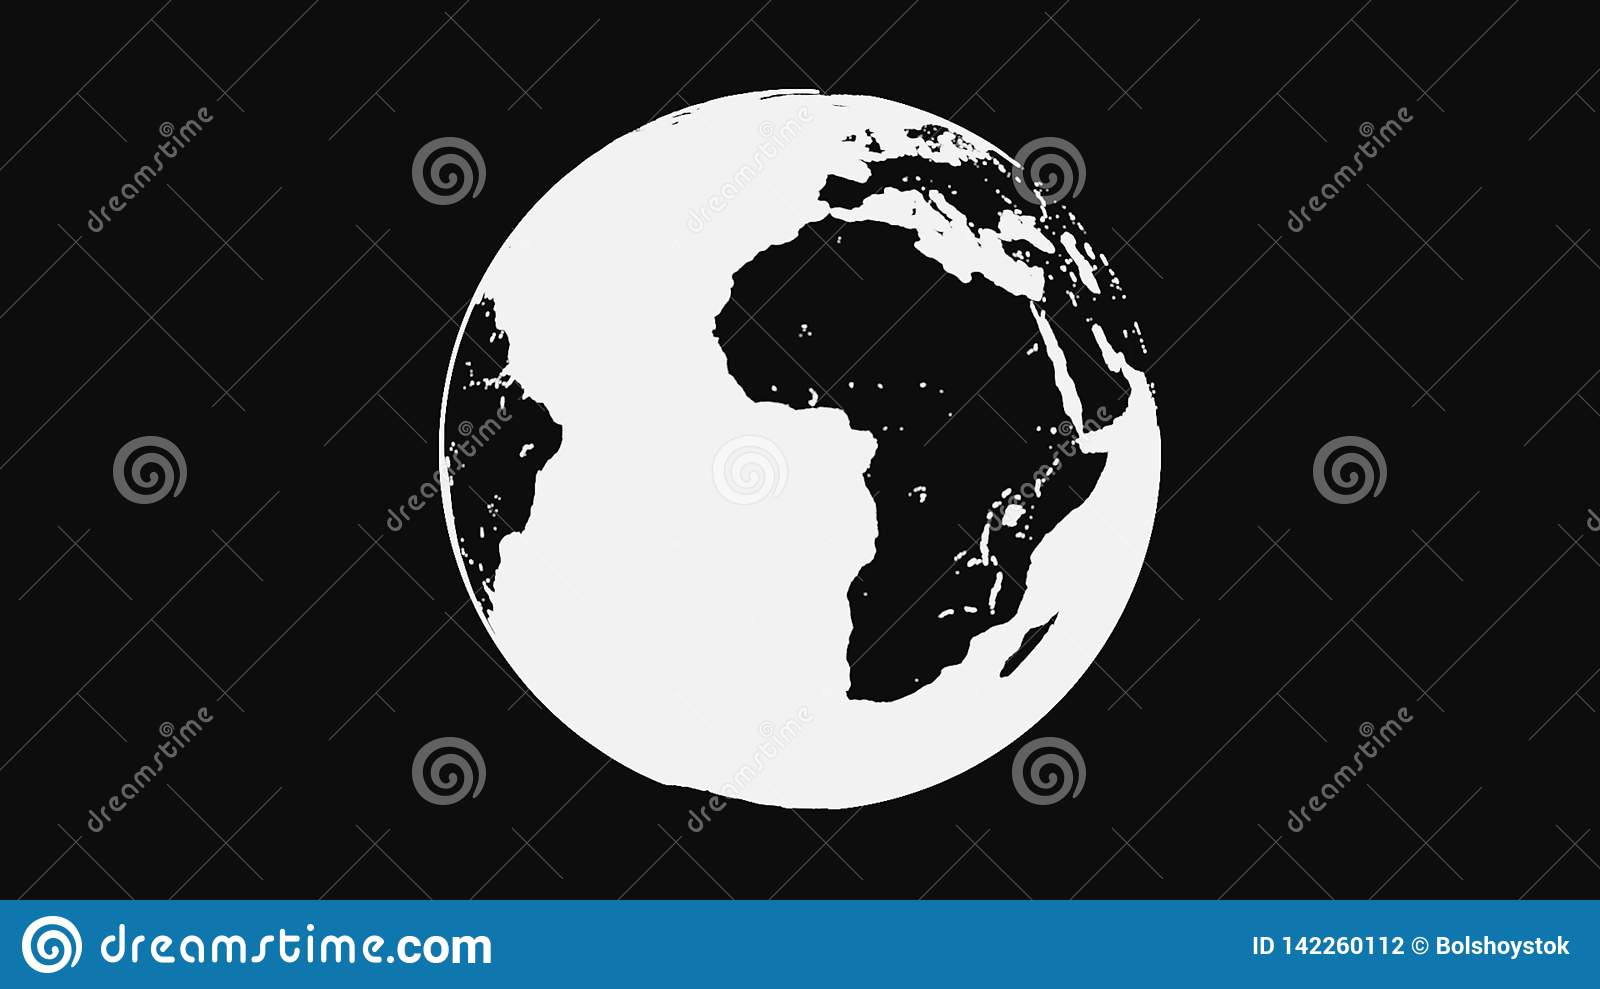 Black and white Earth planet rotating, isolated on black background. Abstract, monochrome terrestrial globe spinning